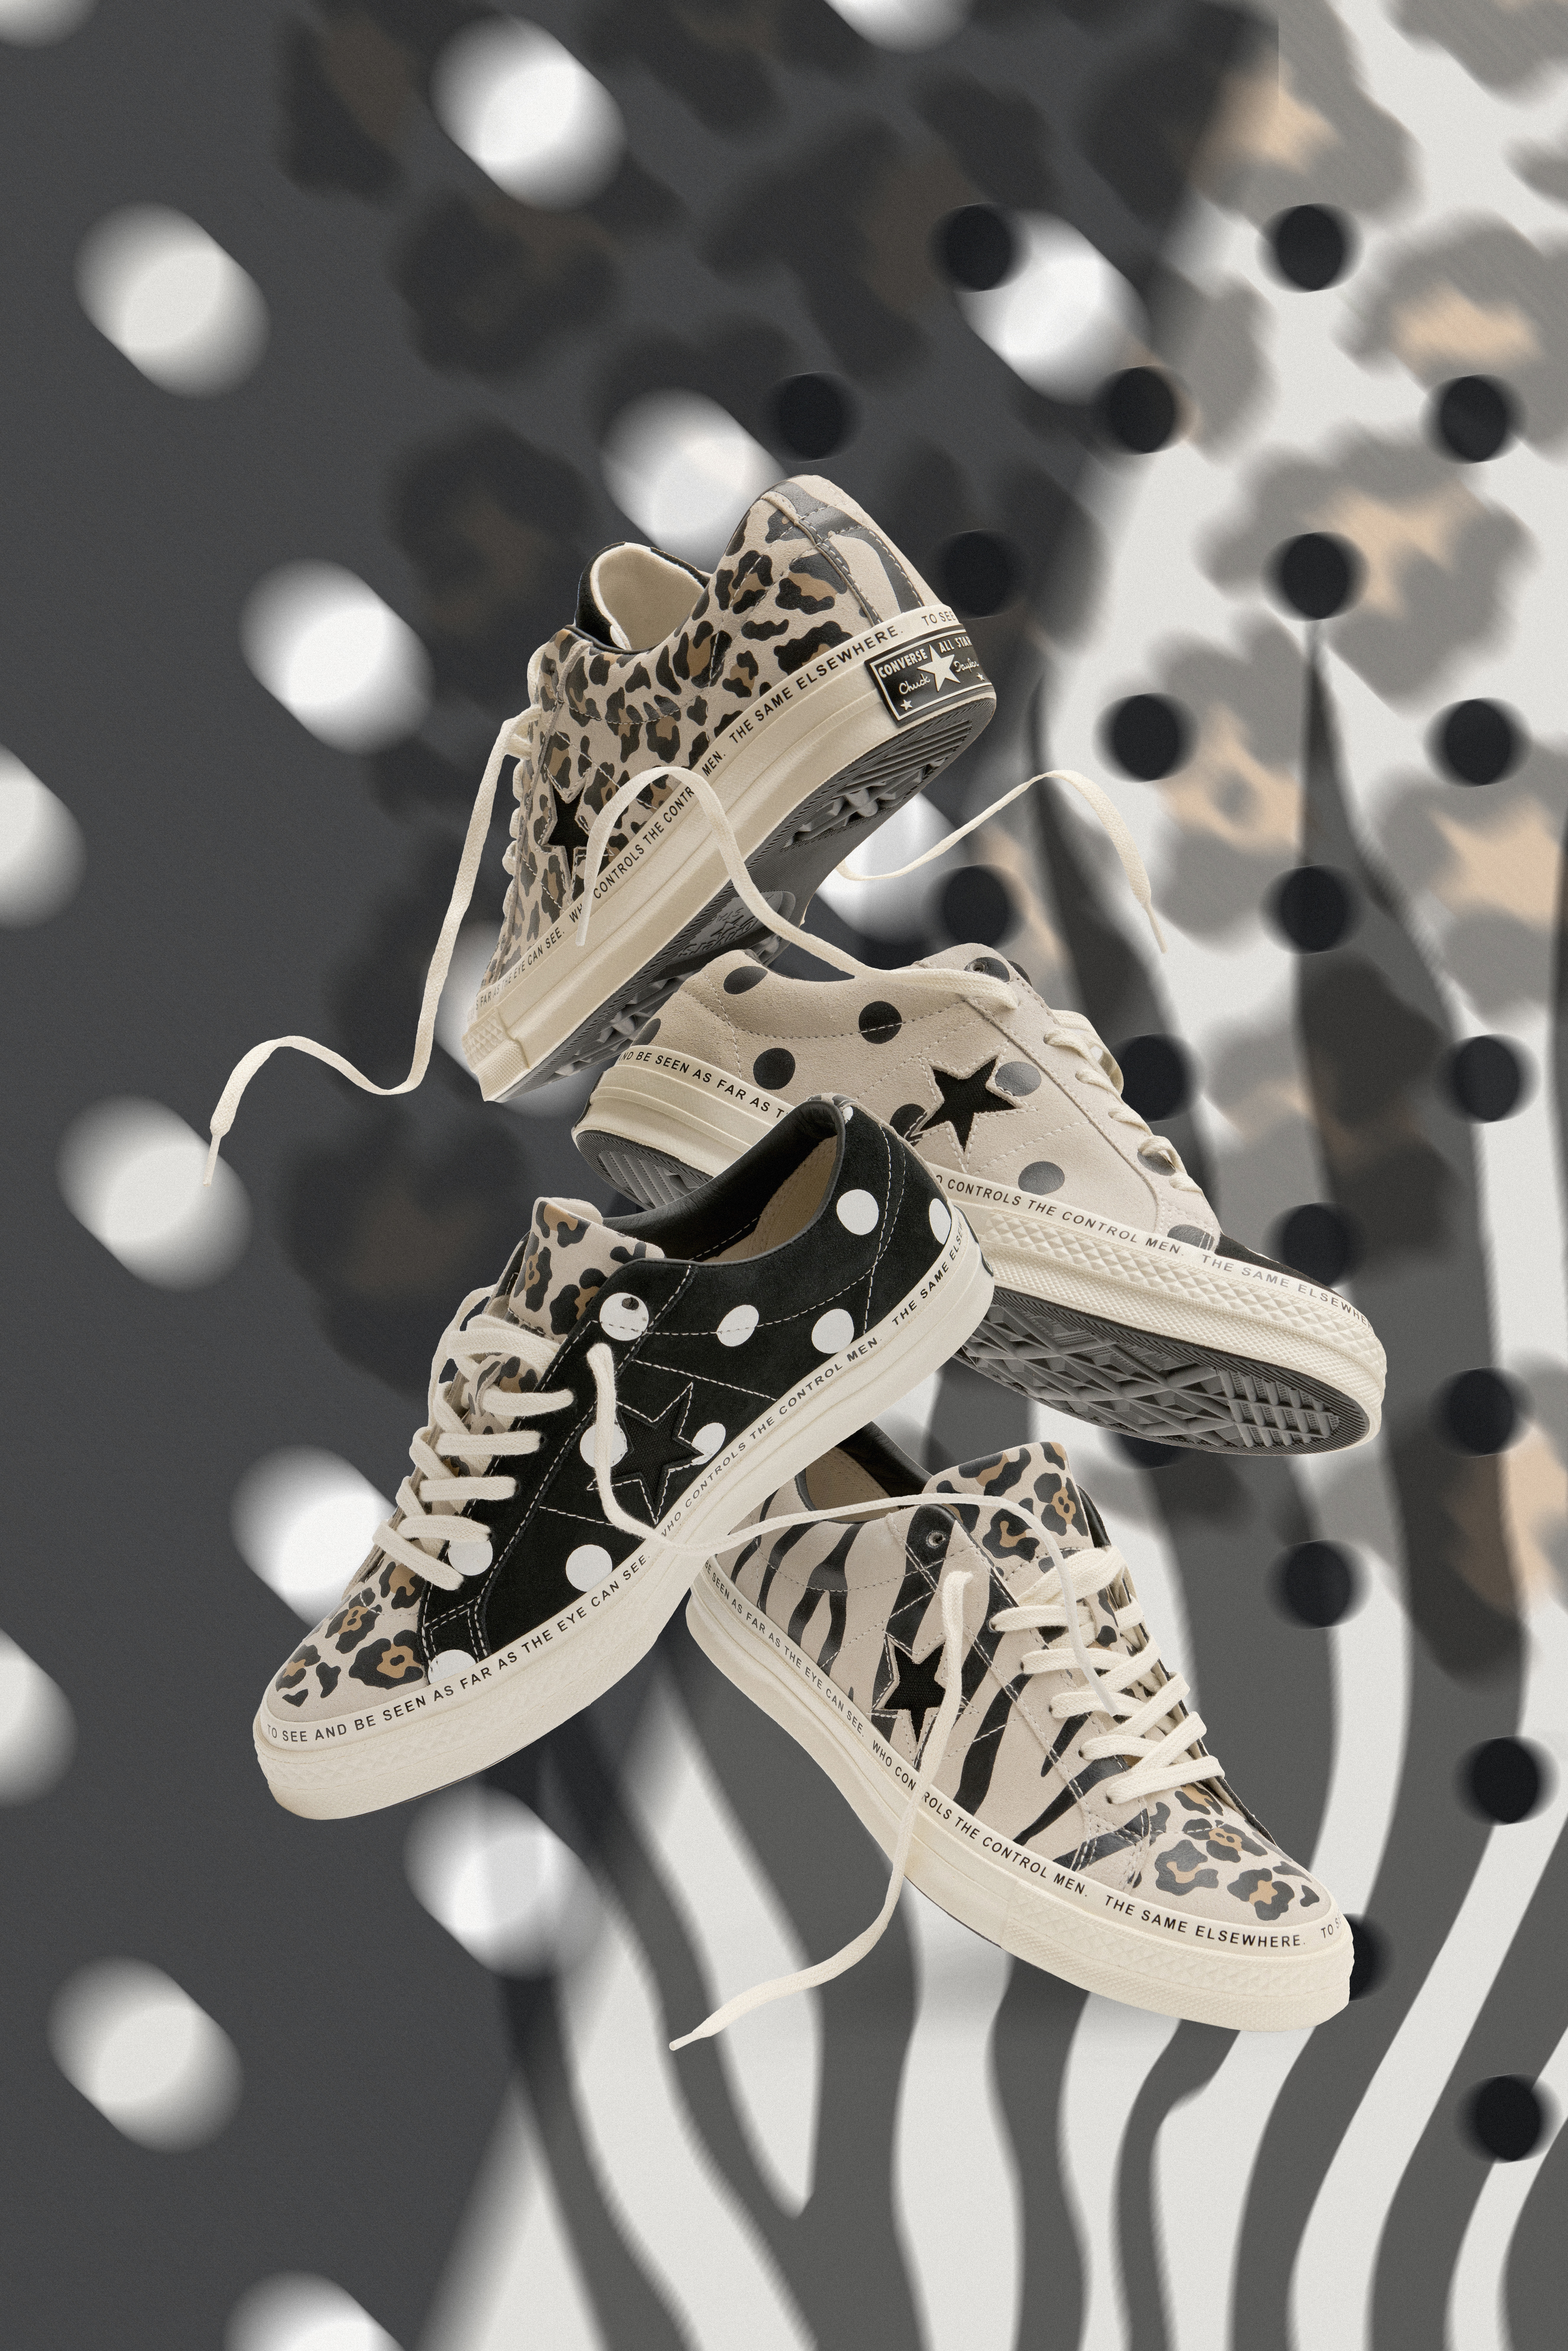 Converse X Brain Dead Bring You The One Star Braindead x Converse Products Image 011